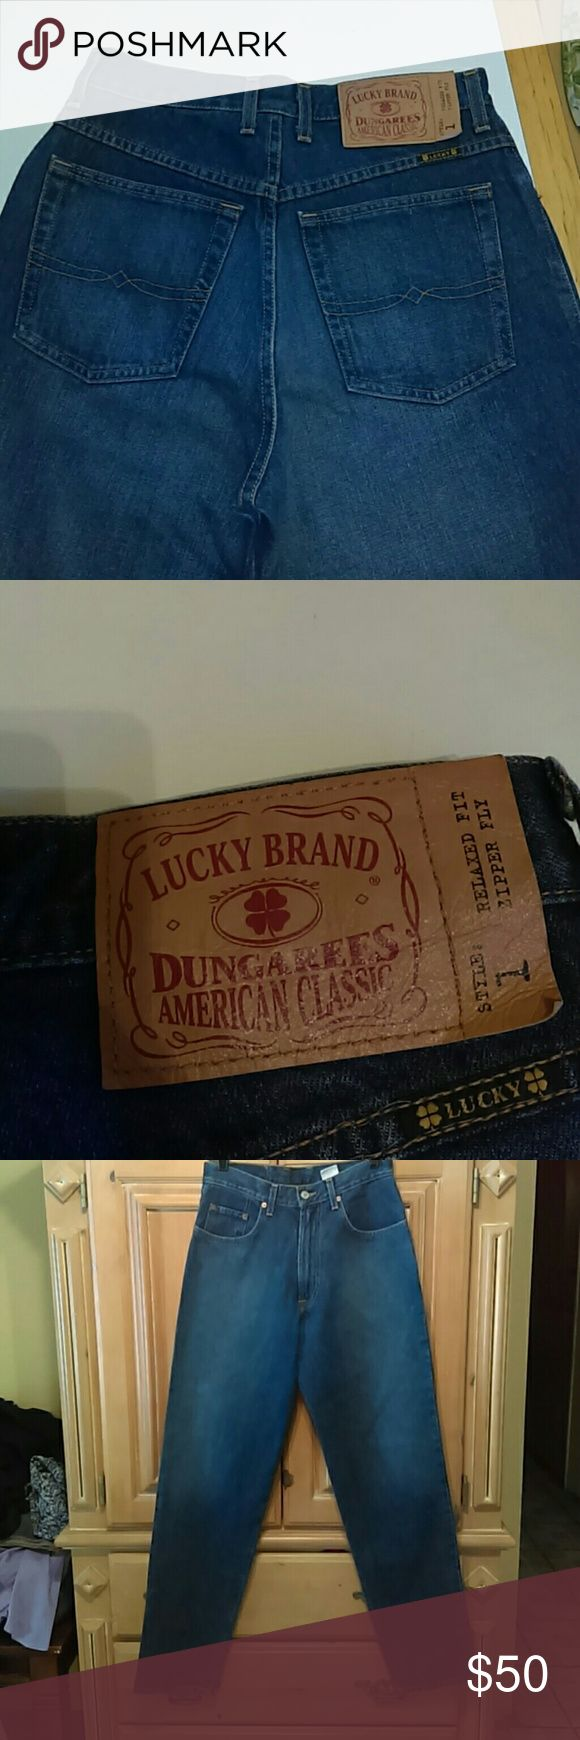 Luck brand dungarees jeans nwt 29X 33 Relaxed fit sipper fly style 1 Lucky Brand Jeans Relaxed